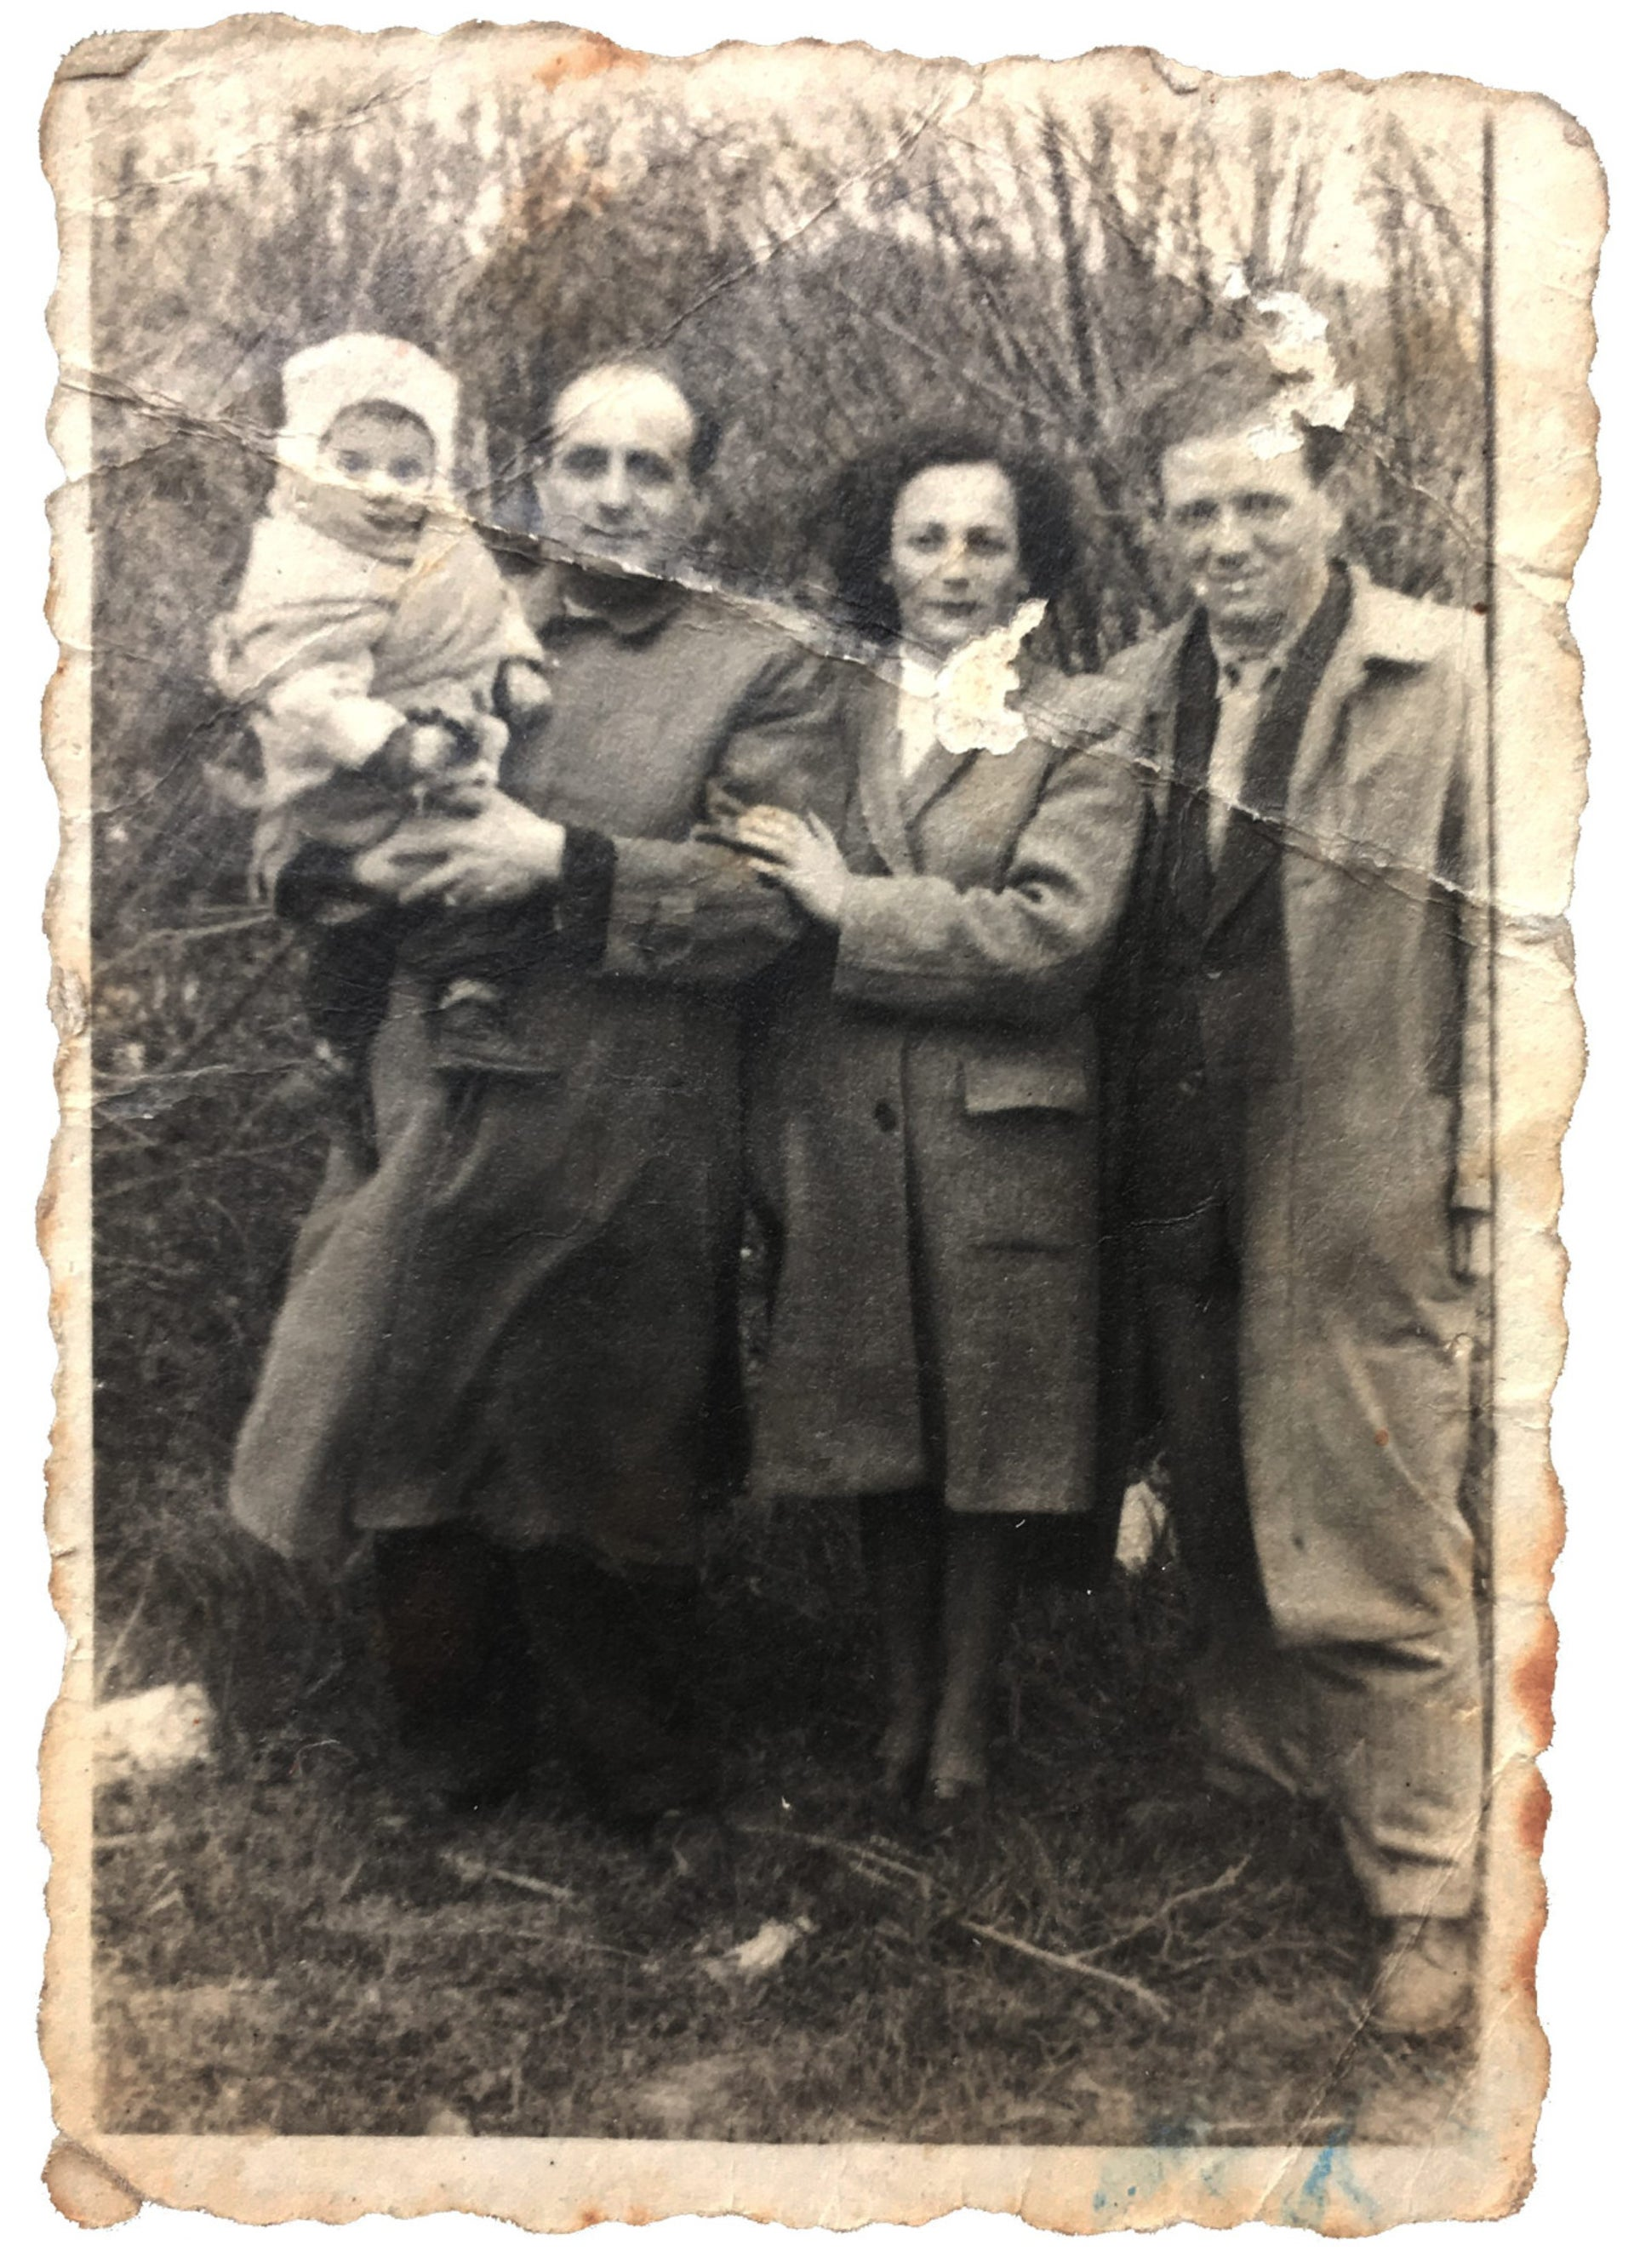 On the left: Michal Shapira's grandparents, Lea and Arie Fenster, and her mother, Zippi Fenster (Shapira), in Germany after the war.